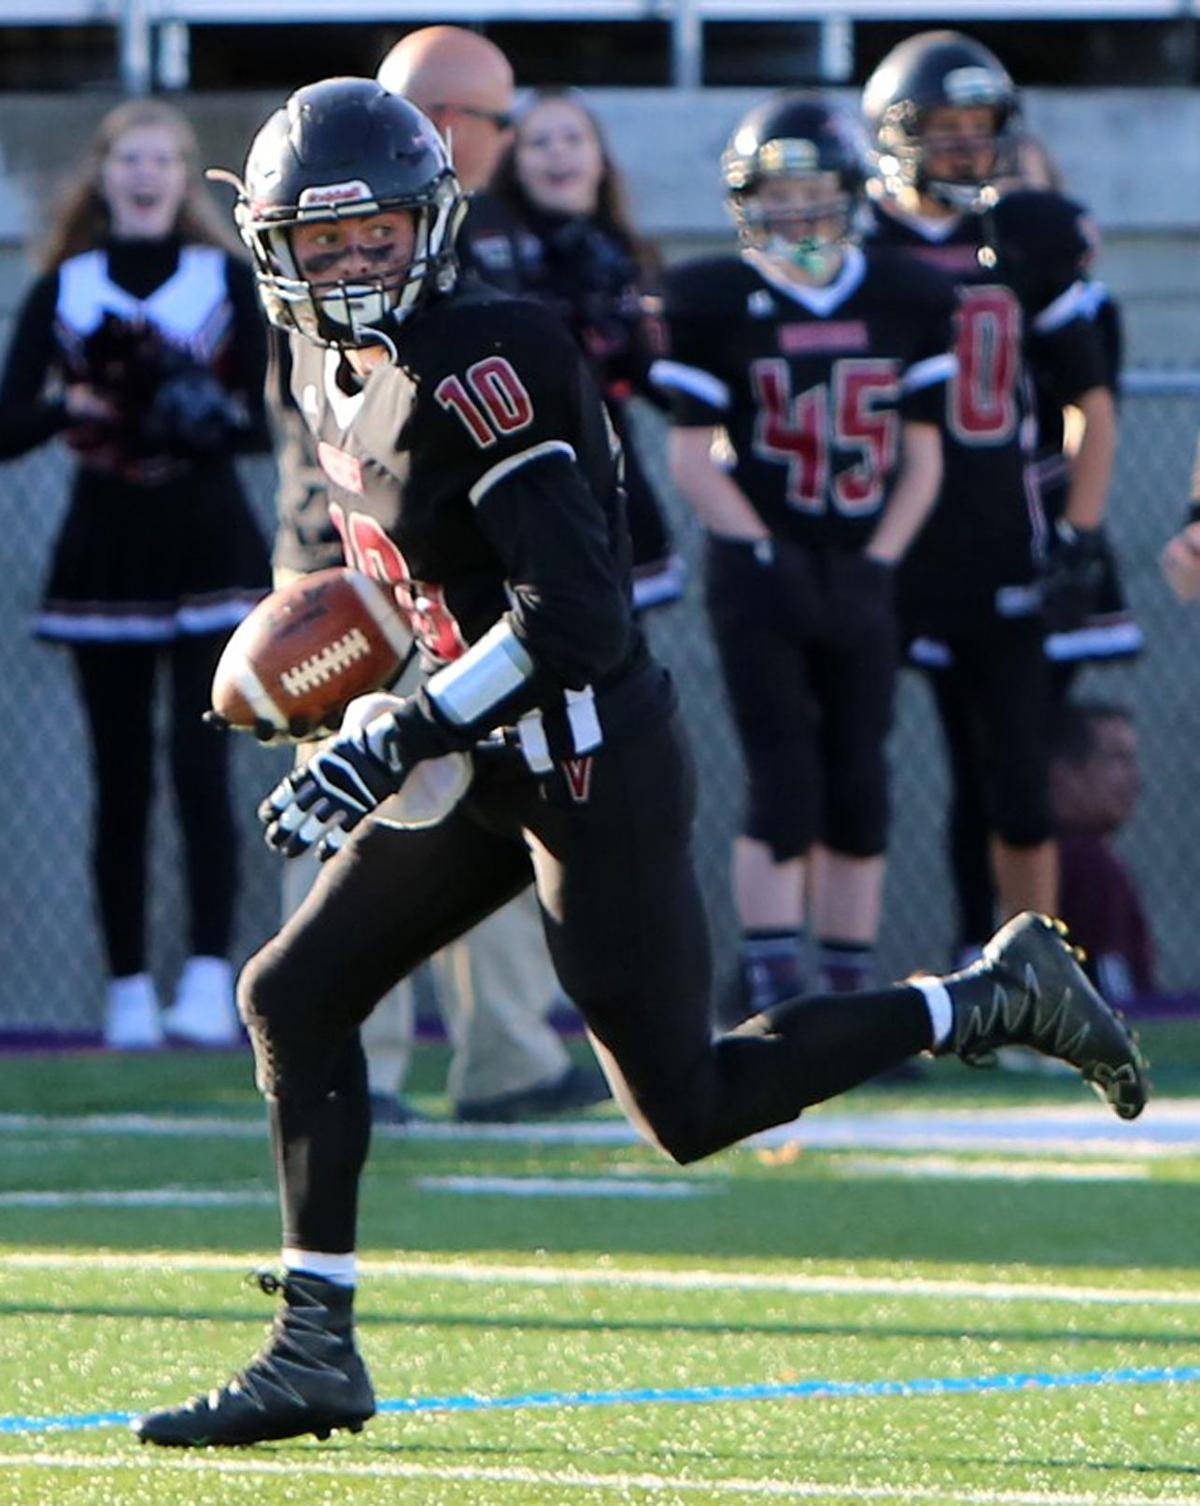 VIEW FROM THE SIDELINES: WIAA names Loomis best in 1B